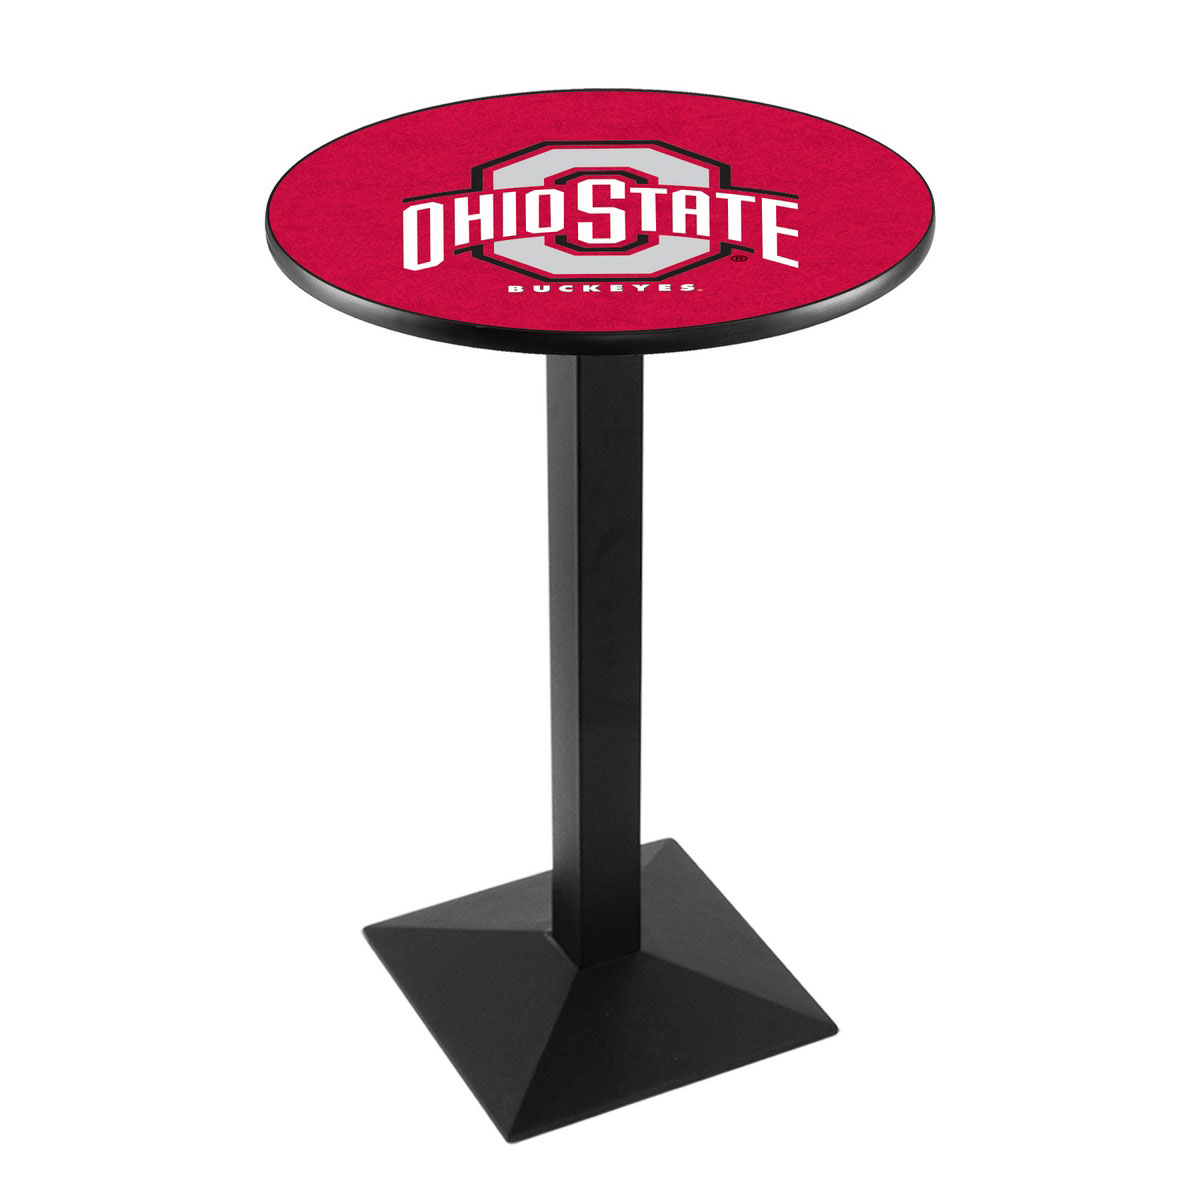 Check out the Ohio State University Logo Pub Bar Table Square Stand Product Photo